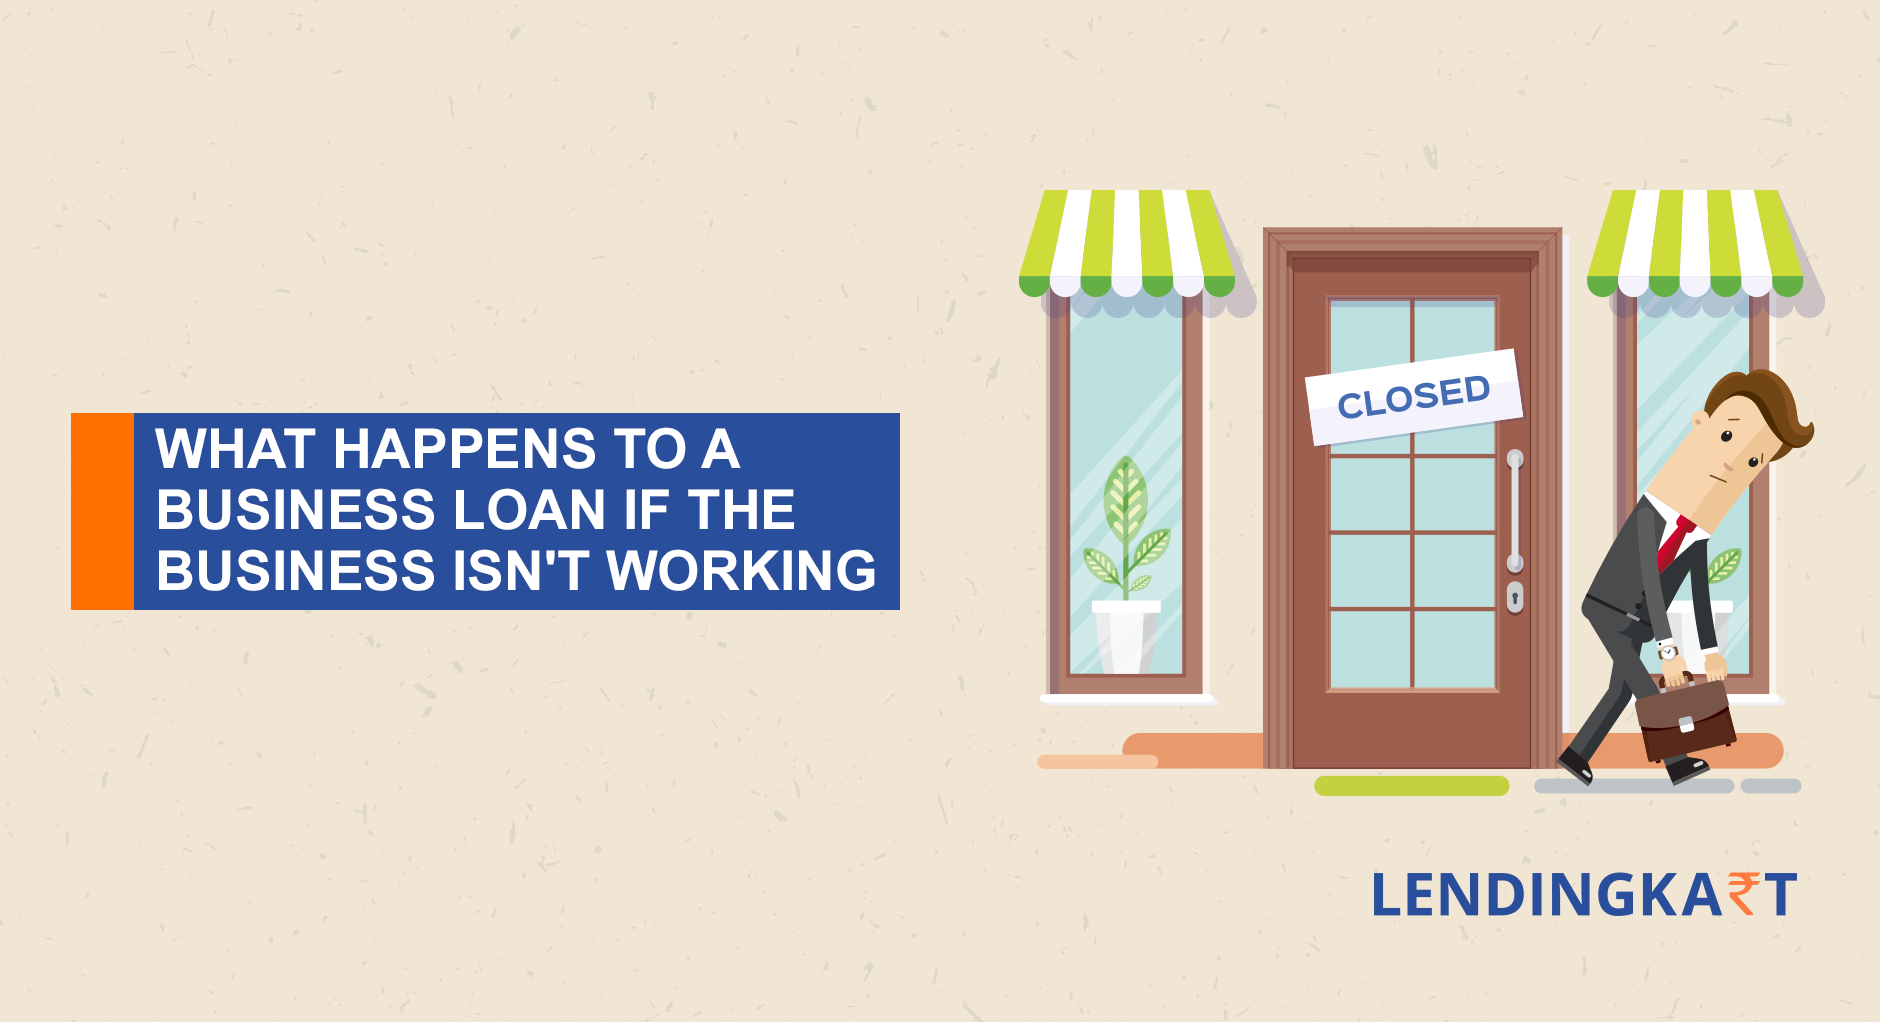 business loan of closed business